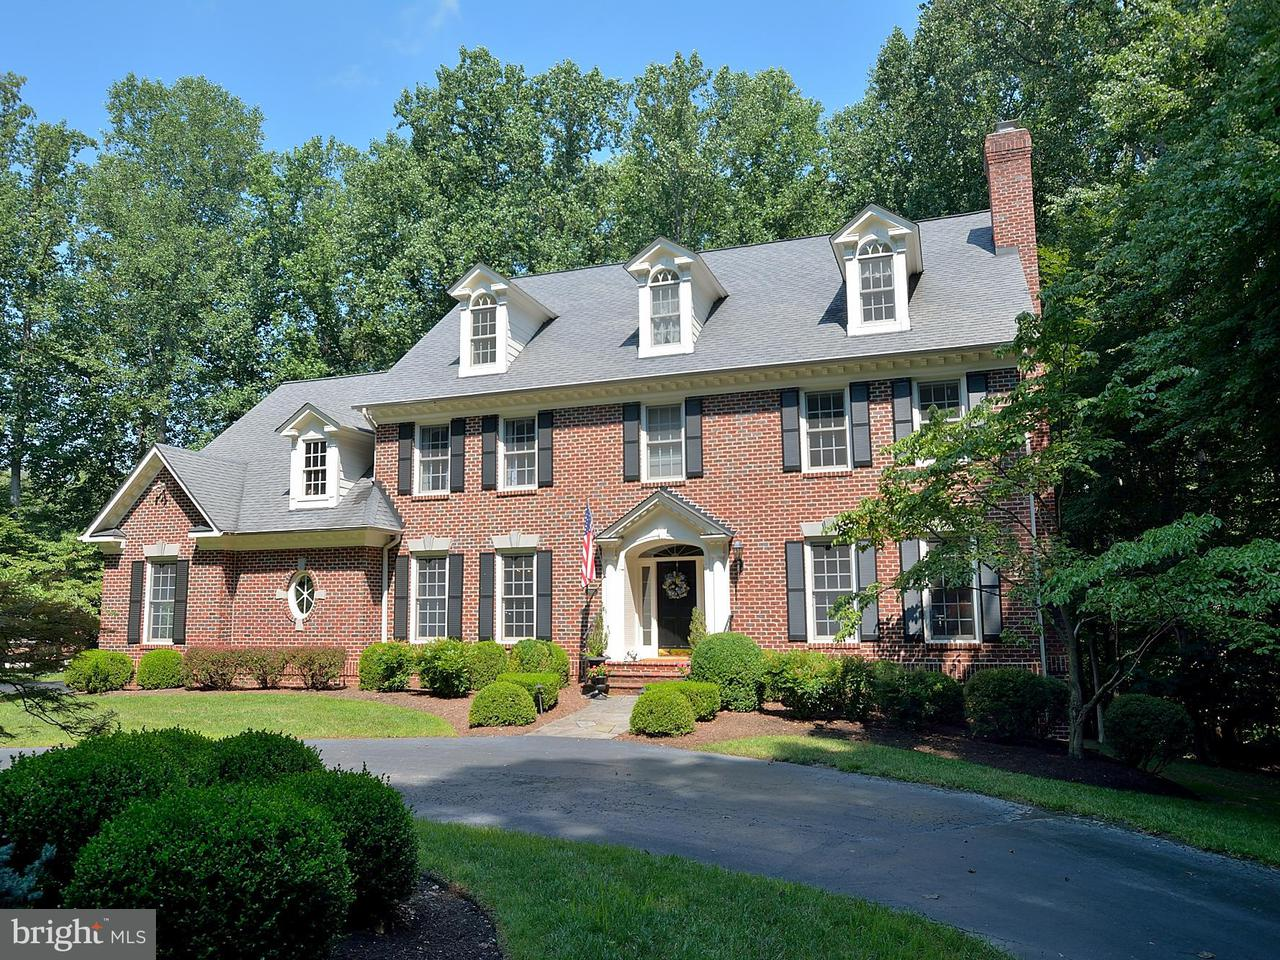 Single Family Home for Sale at 9100 EATON PARK Road 9100 EATON PARK Road Great Falls, Virginia 22066 United States